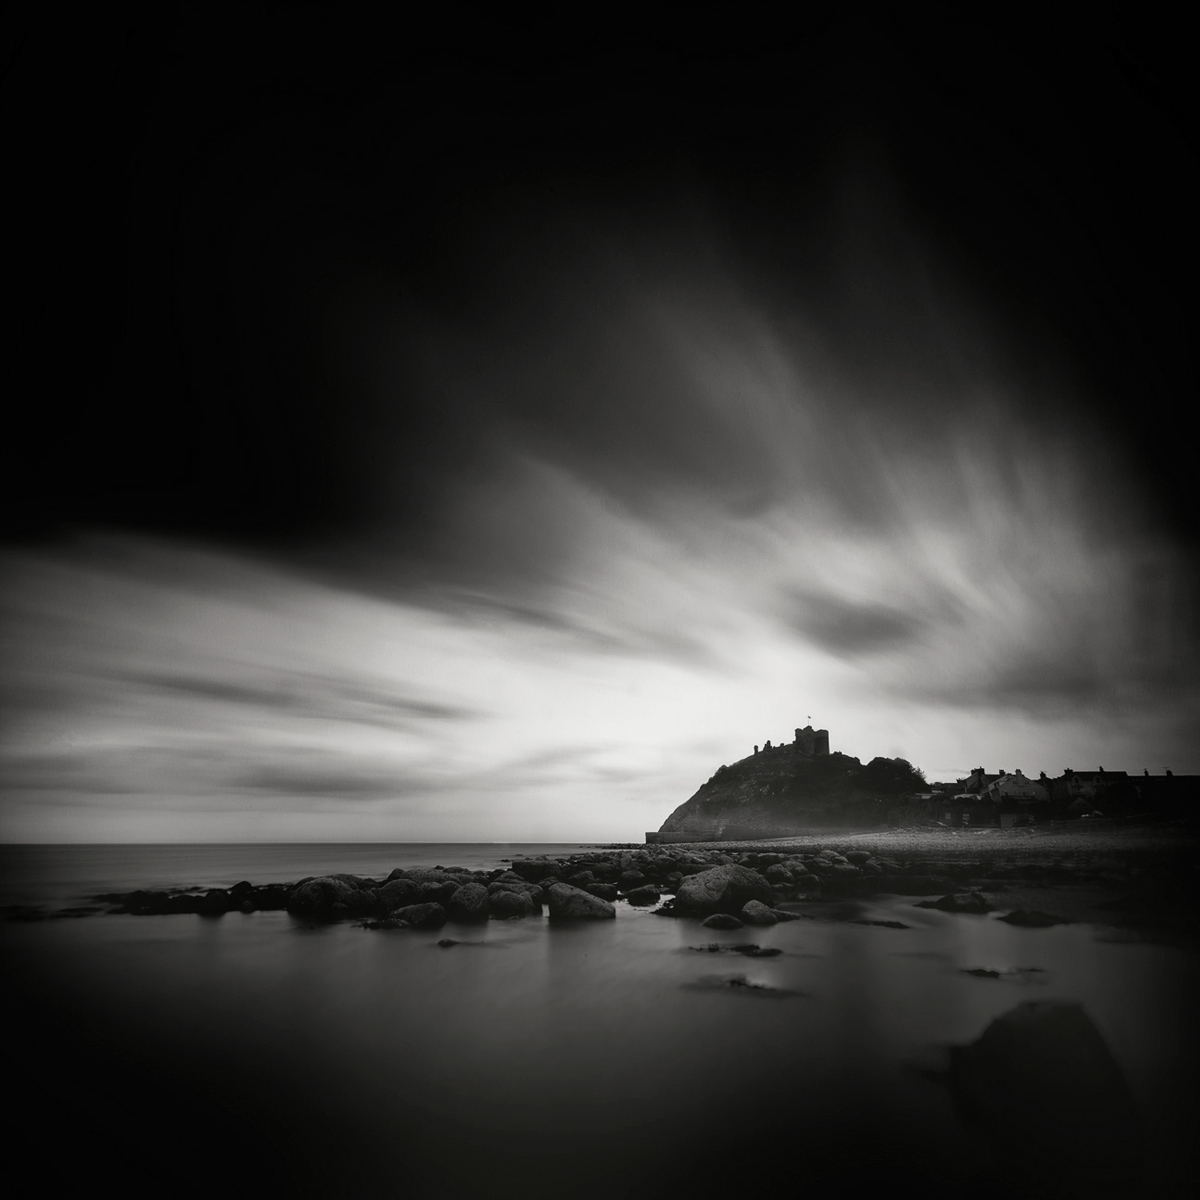 Castillos de Arena - Andy Lee - 6